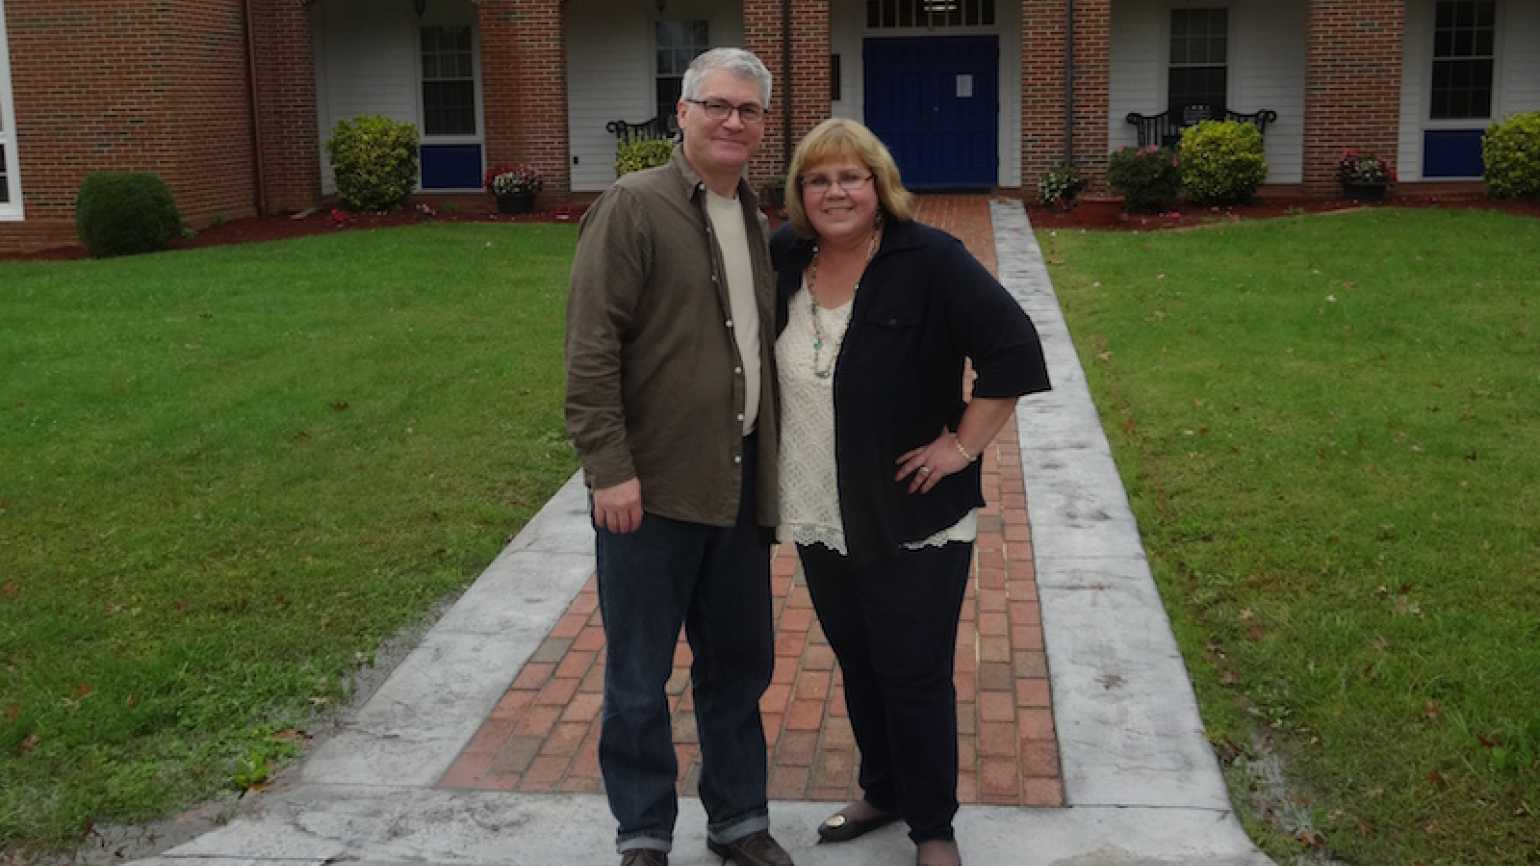 Michelle Cox with Robert Day, director of Patrick Henry Family Services.